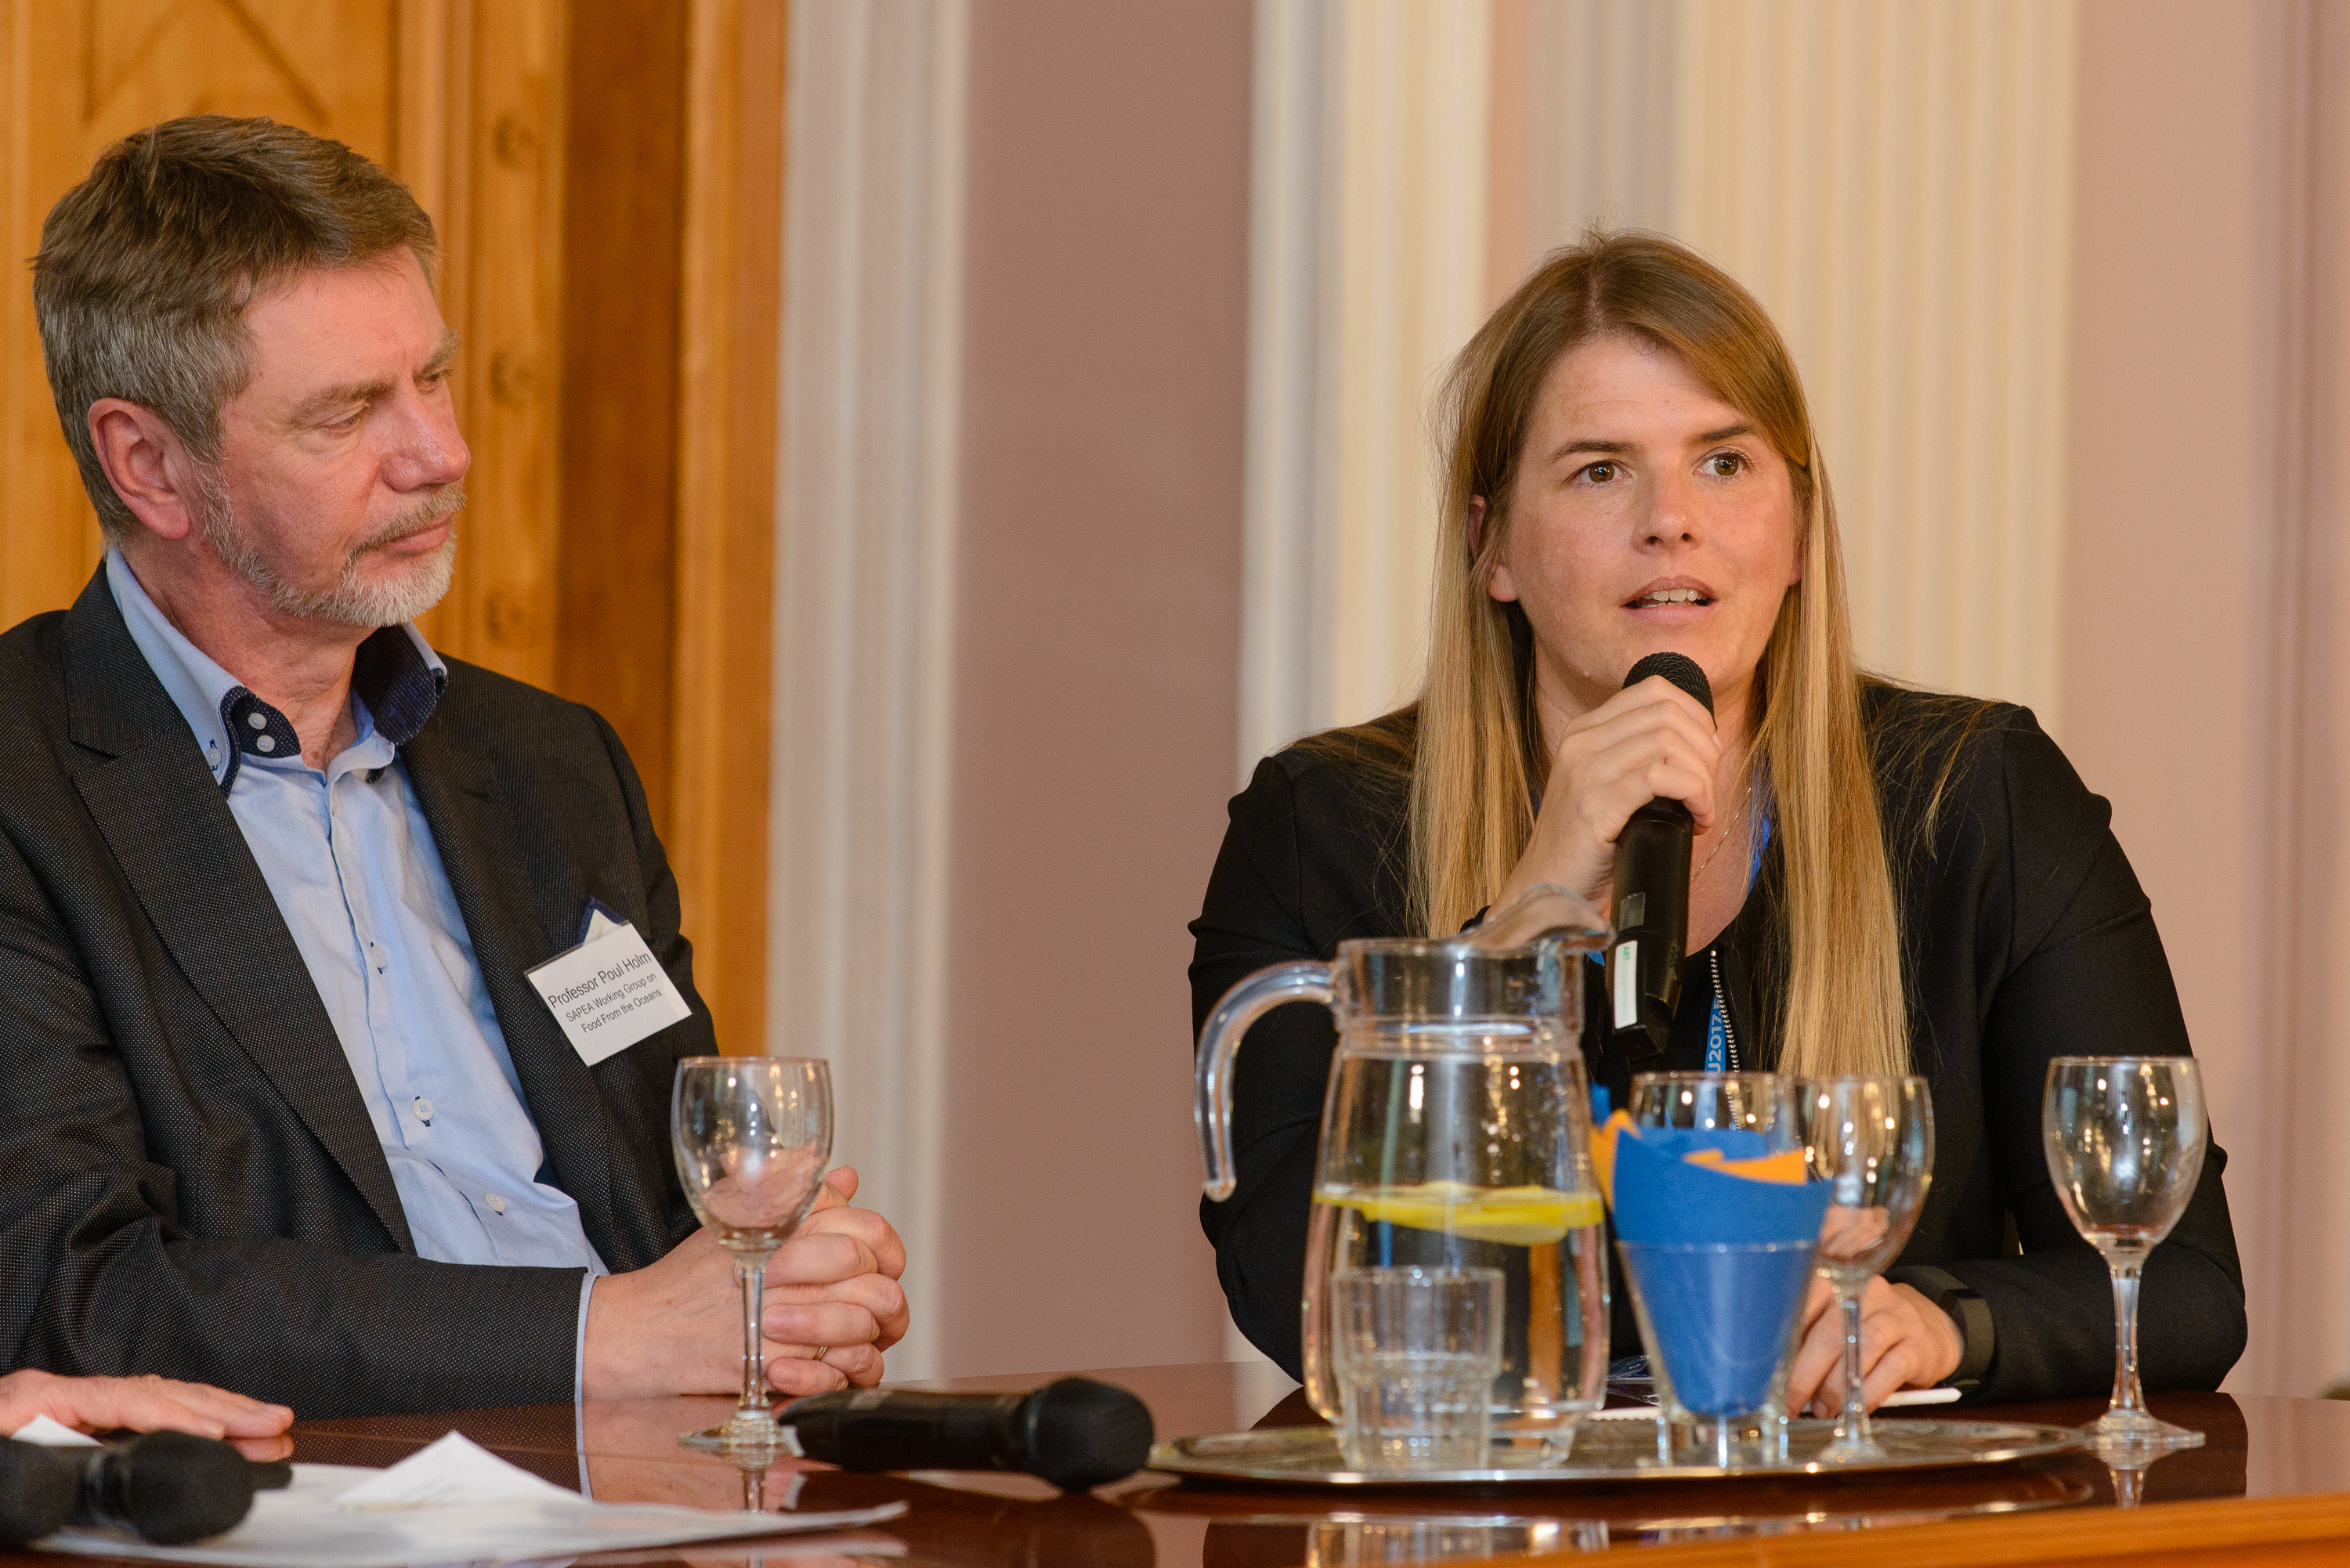 Professor Poul Holm (Food from the Oceans Working Group Chair) and Professor Nicole Grobert, Panel of representatives from the academic community, Crossing boundaries: new approaches to science for policy in Europe, Estonian Academy of Sciences in Tallinn, 13 October 2017